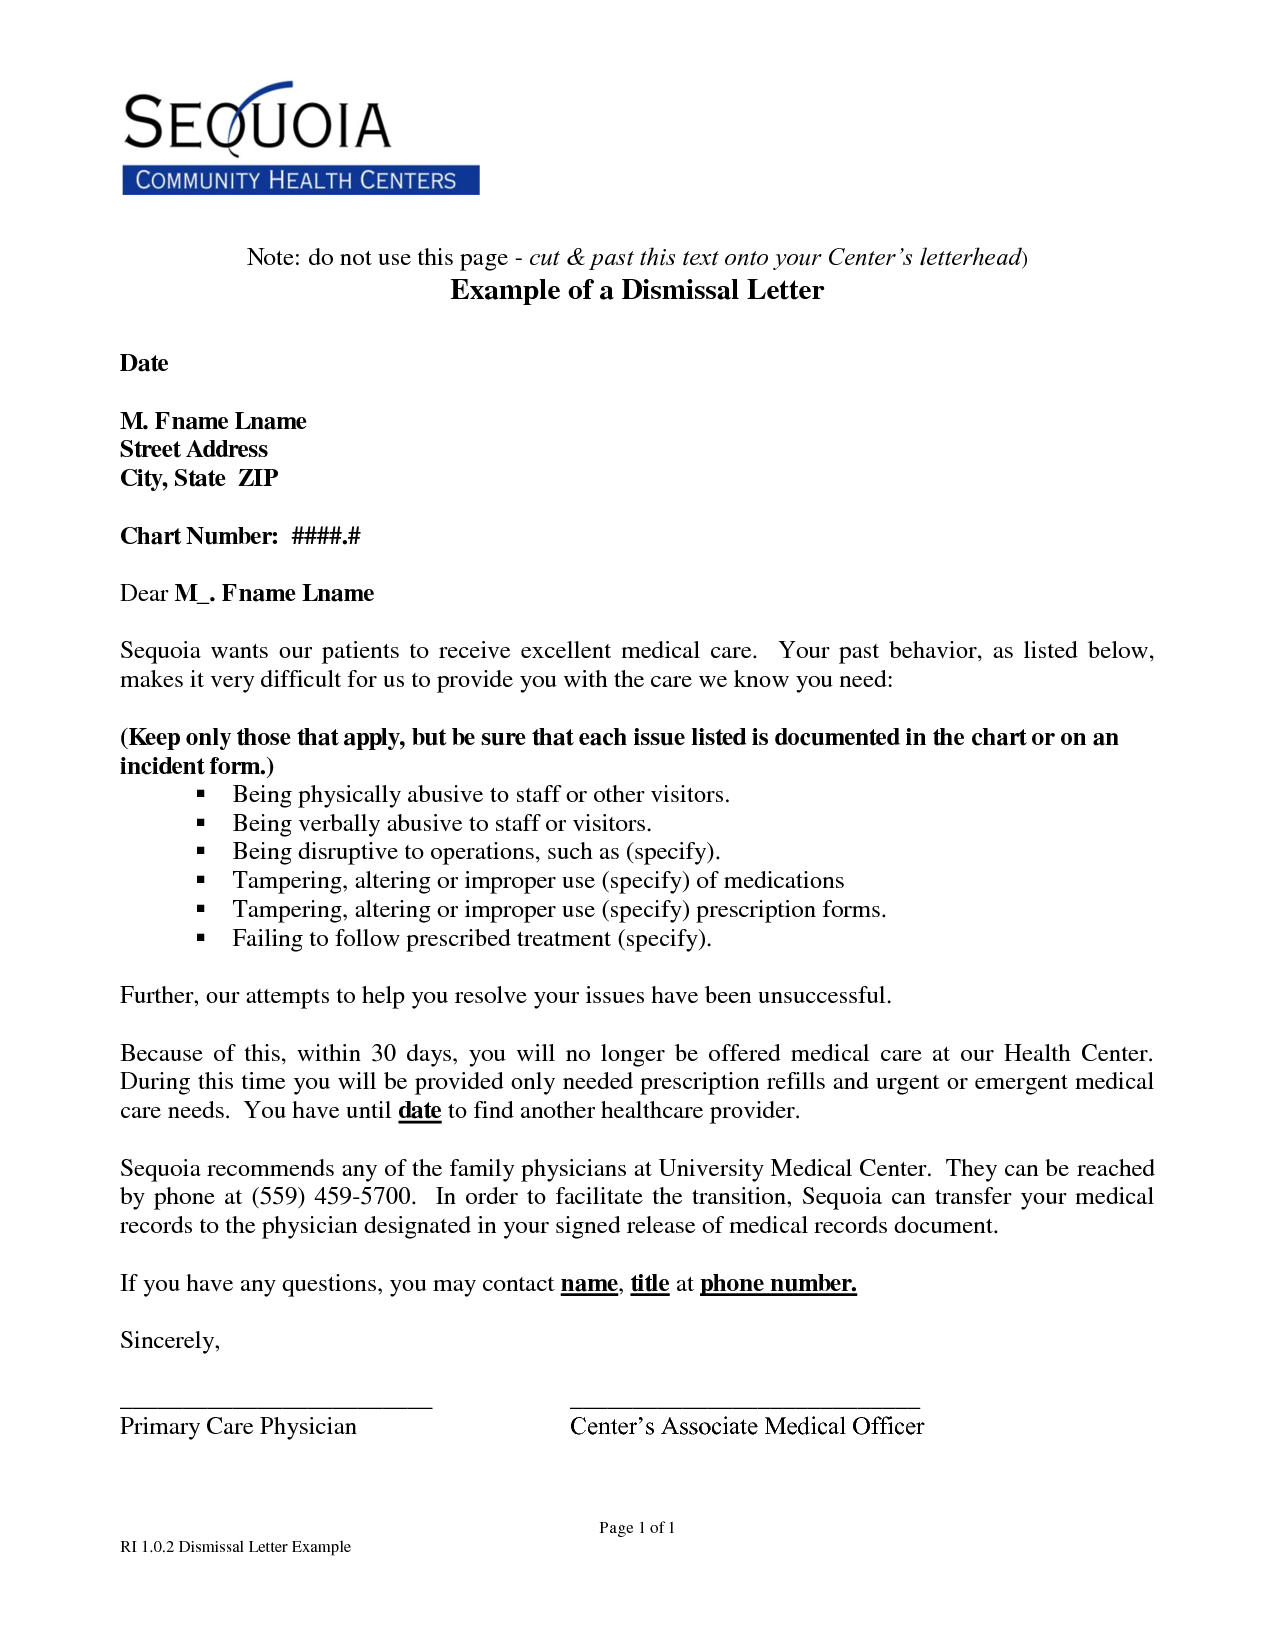 Medical Records Cover Letter Large Pictures Memorable